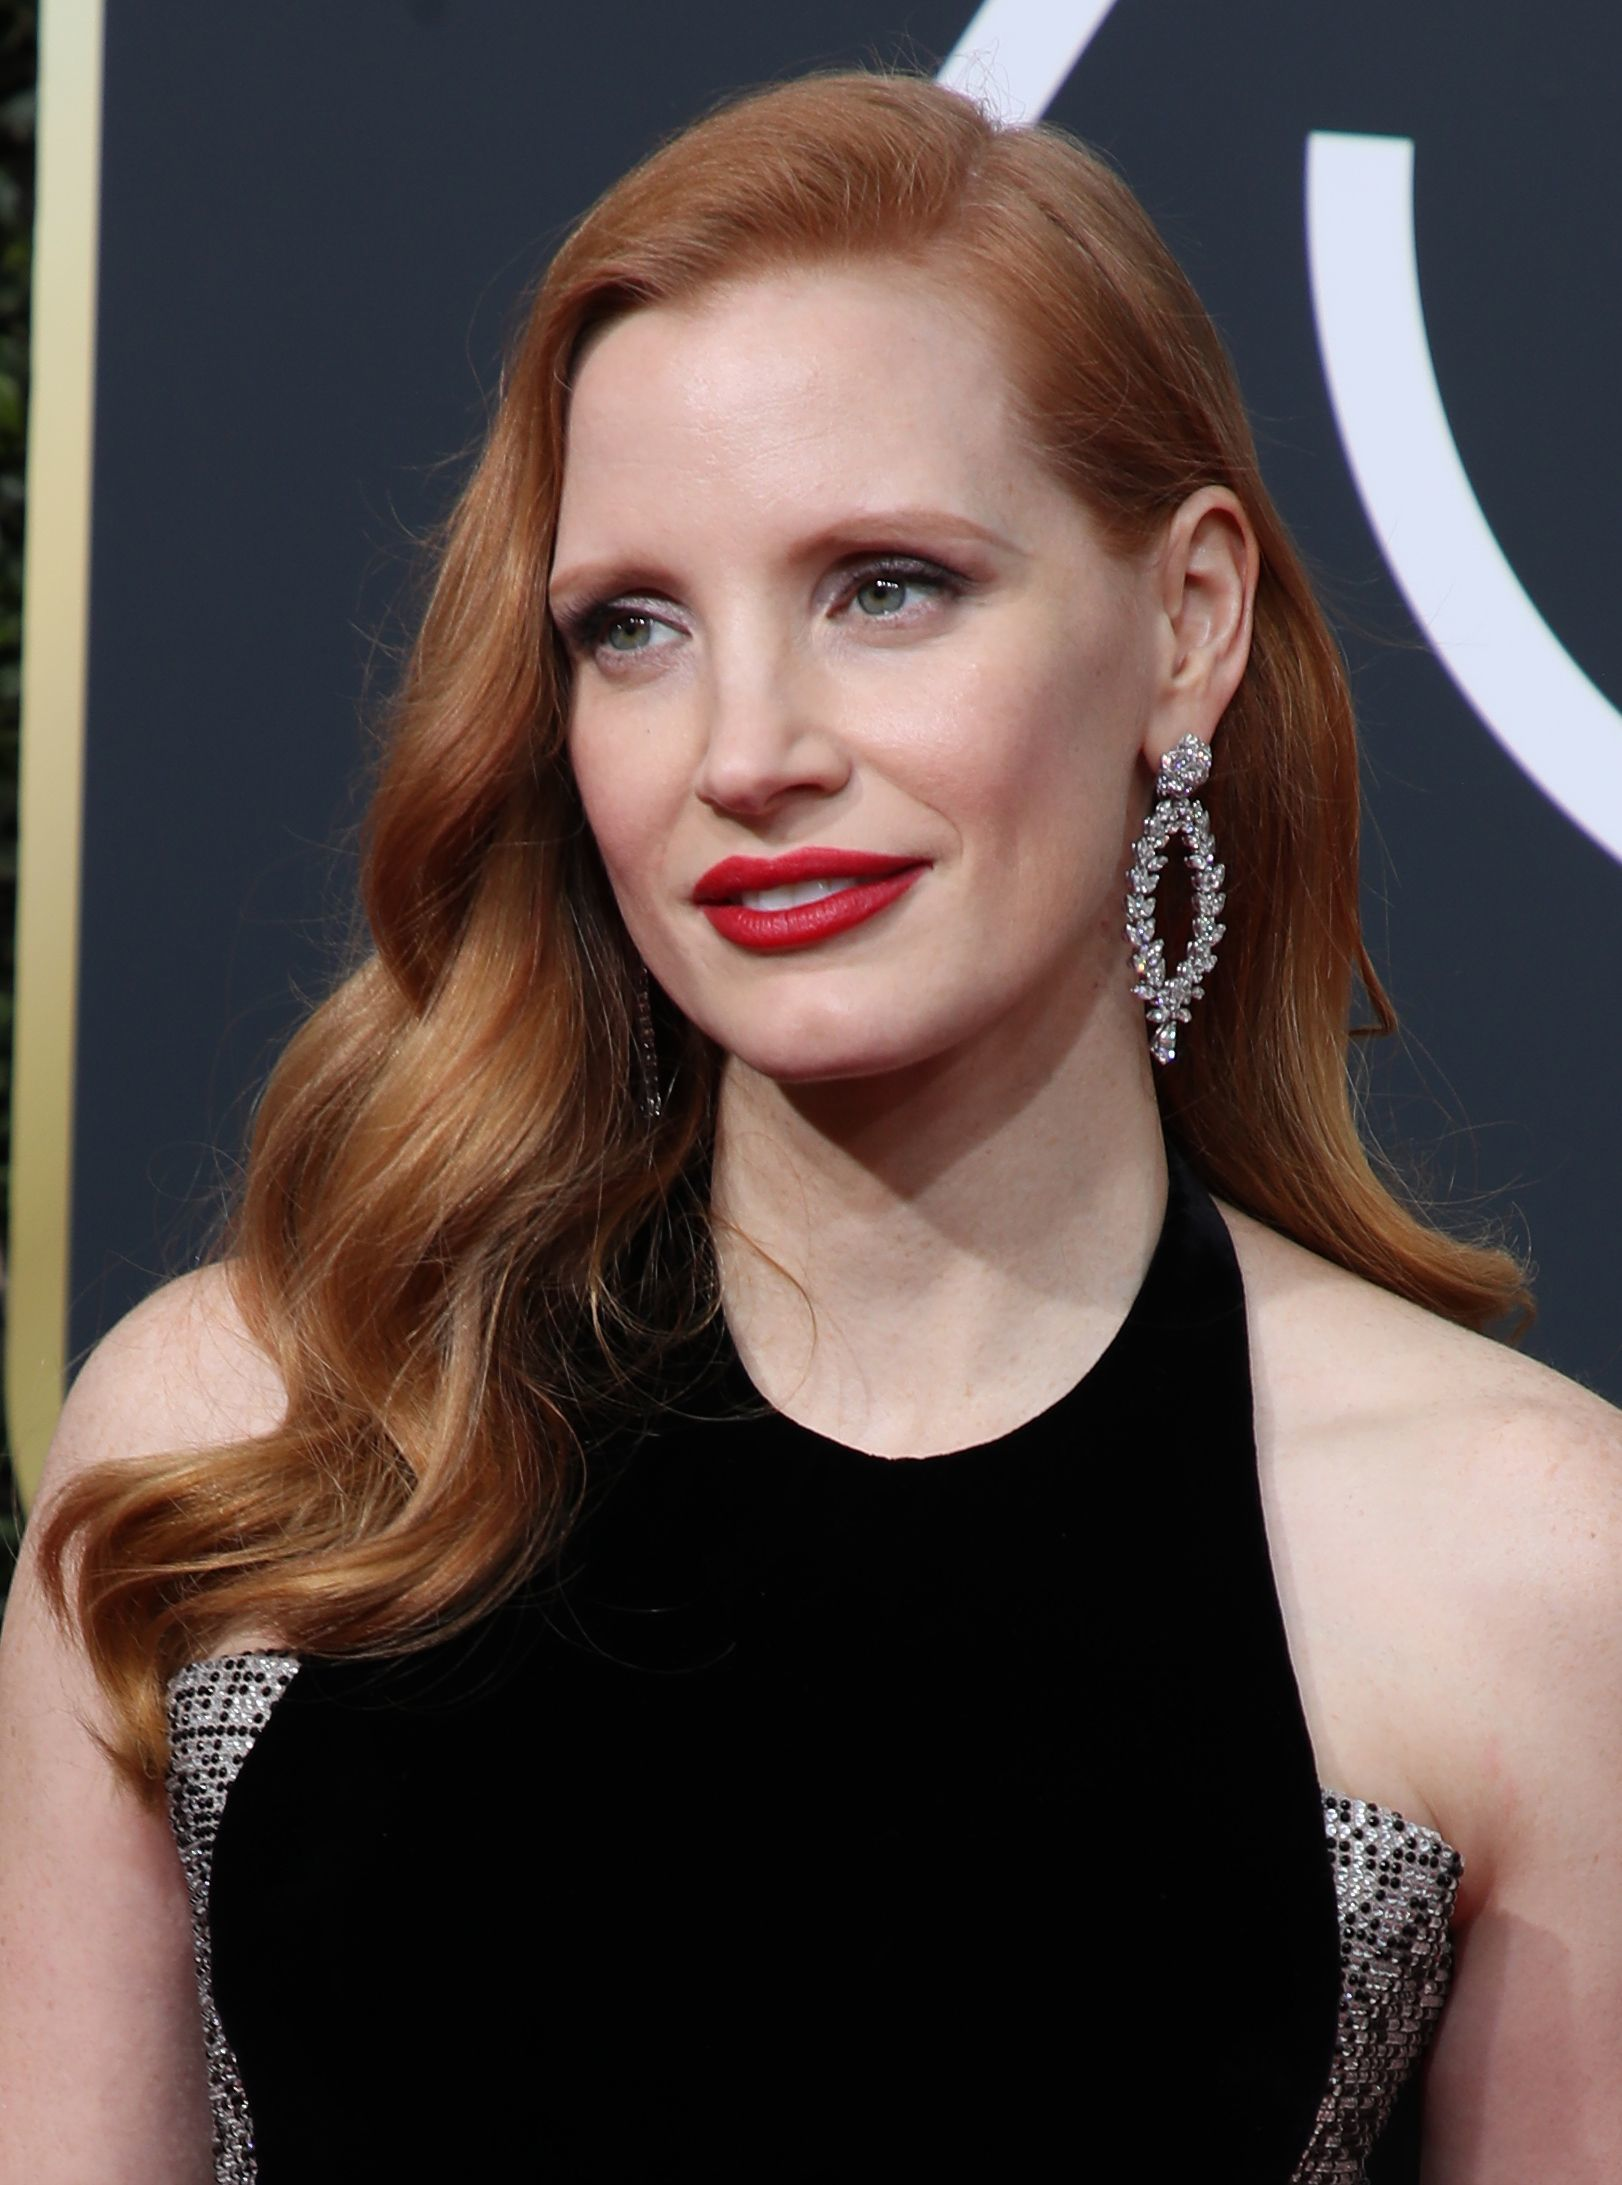 Jessica Chastain arrives at the 75th Annual Golden Globe Awards in Los Angeles on Jan. 7, 2018.